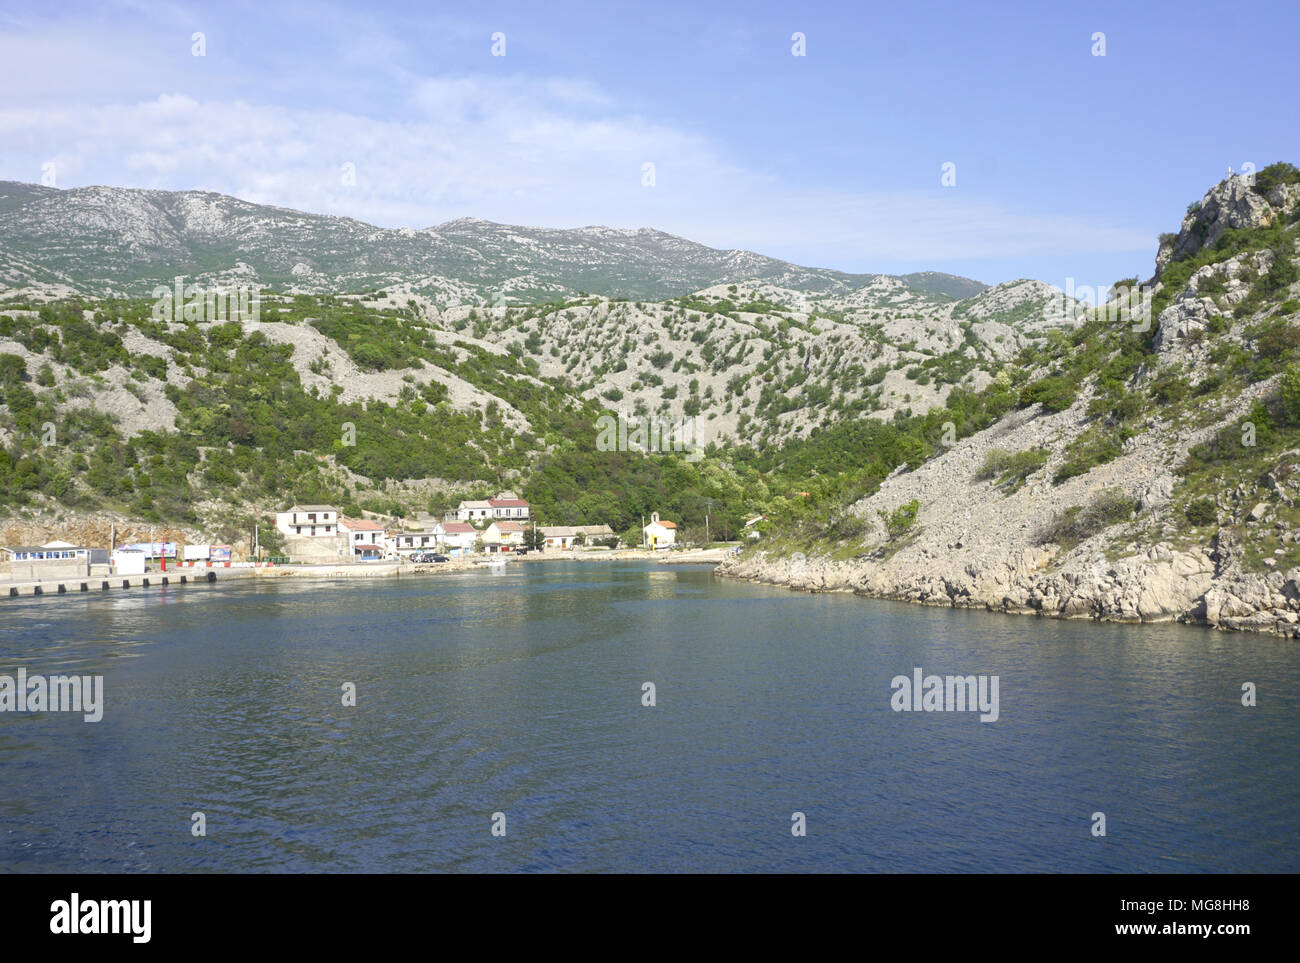 Prizna, Croatia, April 24, 2018. Small village Prizna, ferry port, sea view with Velebit mountain in the background, in the late spring Stock Photo